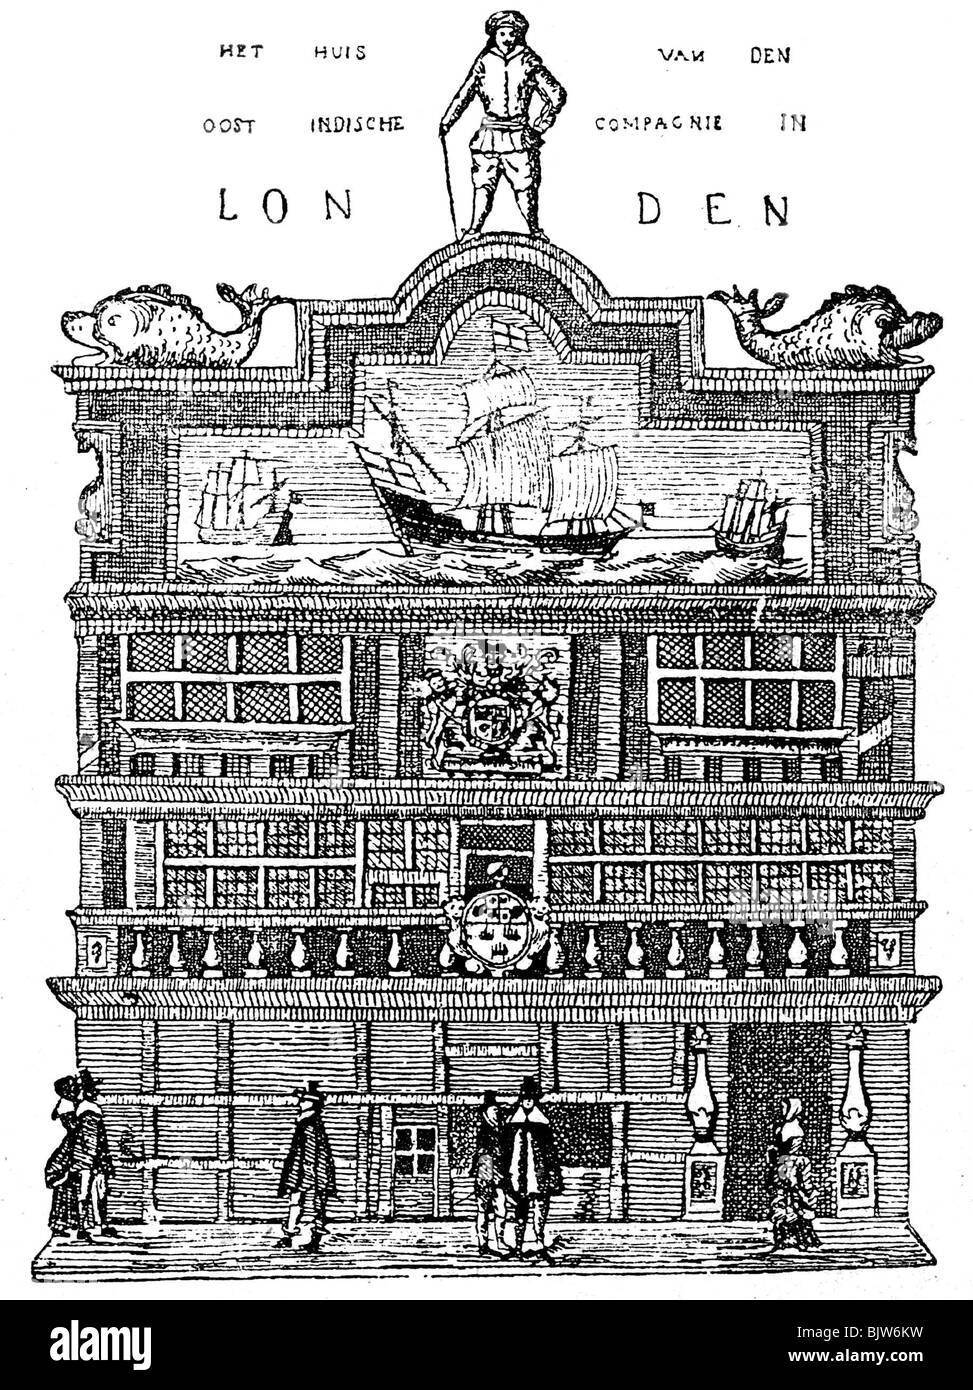 trade, trading company, British East Indian Company, wood engraving, London, 19th century, Additional-Rights-Clearances - Stock Image